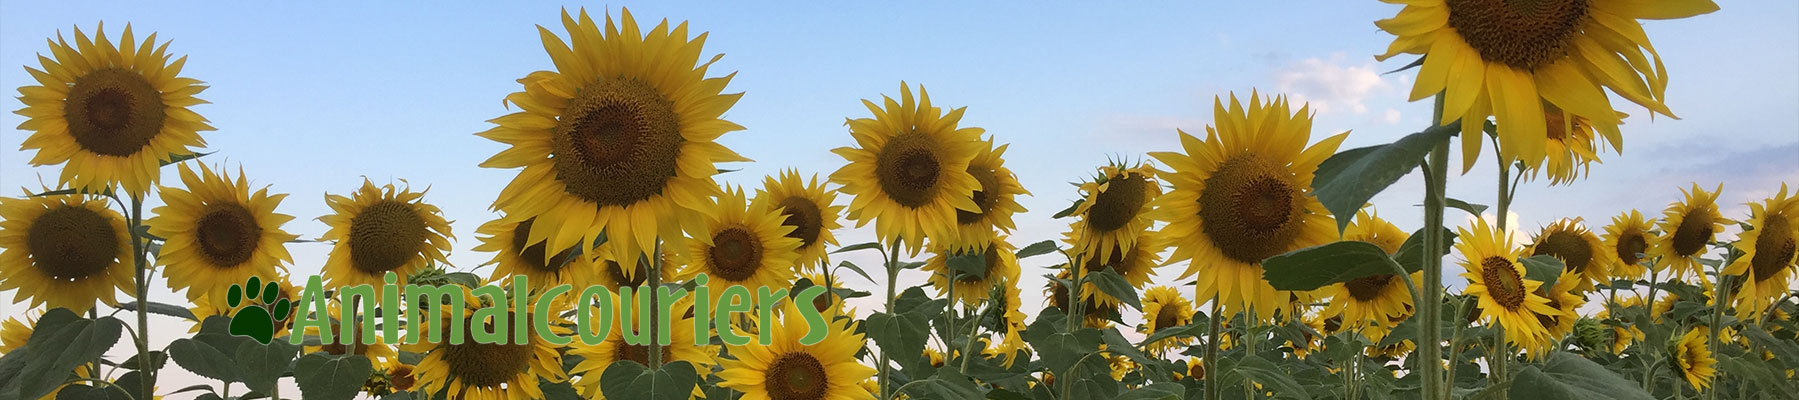 a sunflower field seen by Animalcouriers